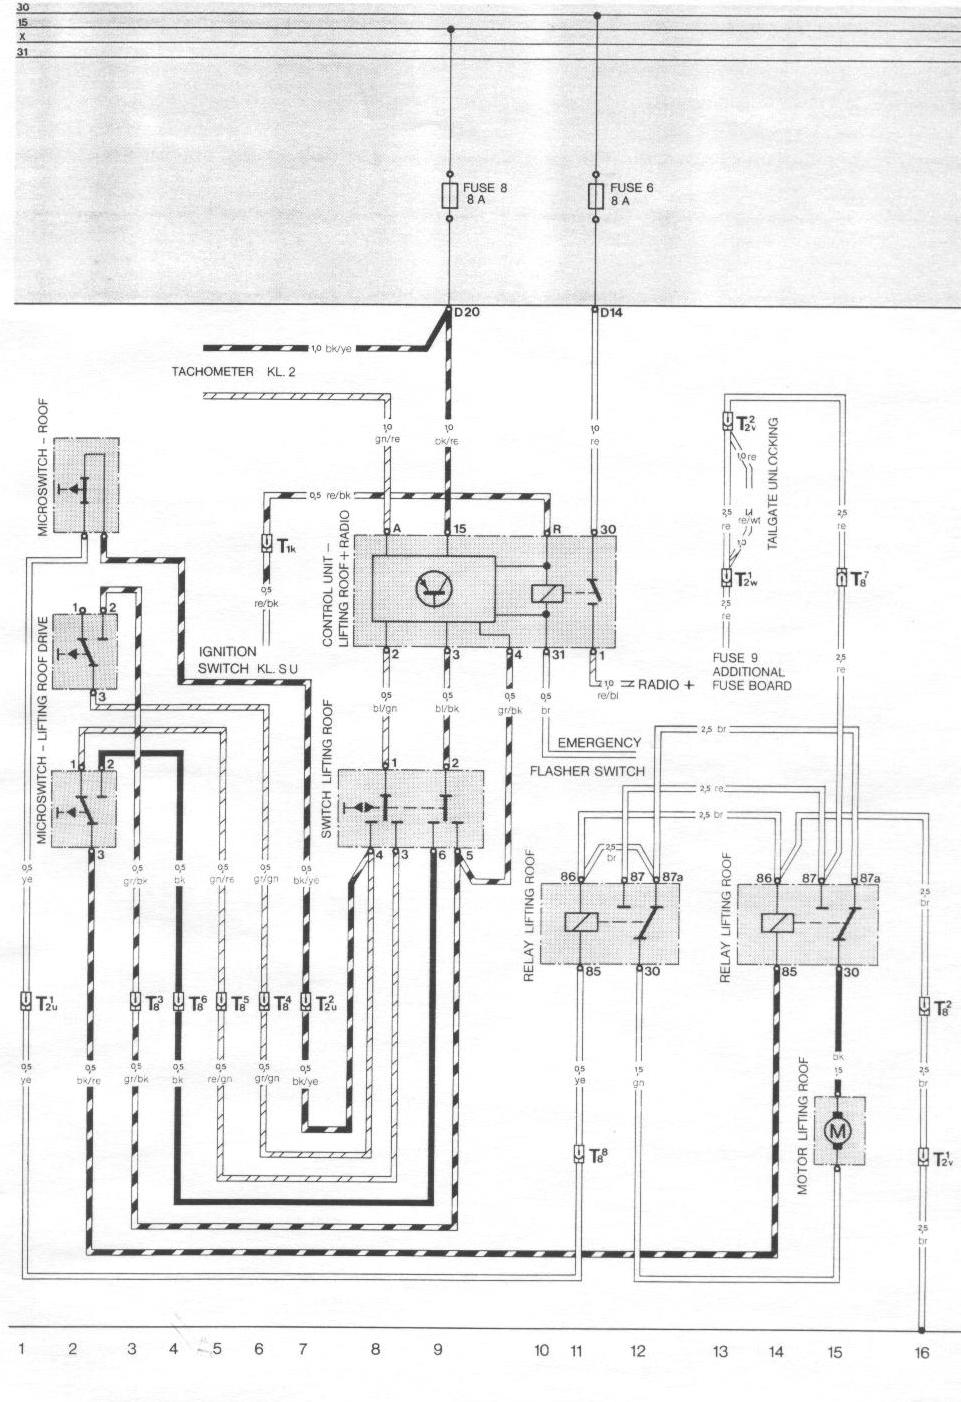 medium resolution of pelican parts porsche 924 944 electrical diagrams 1983 porsche 944 wiring diagram 83 porsche 944 wiring diagram